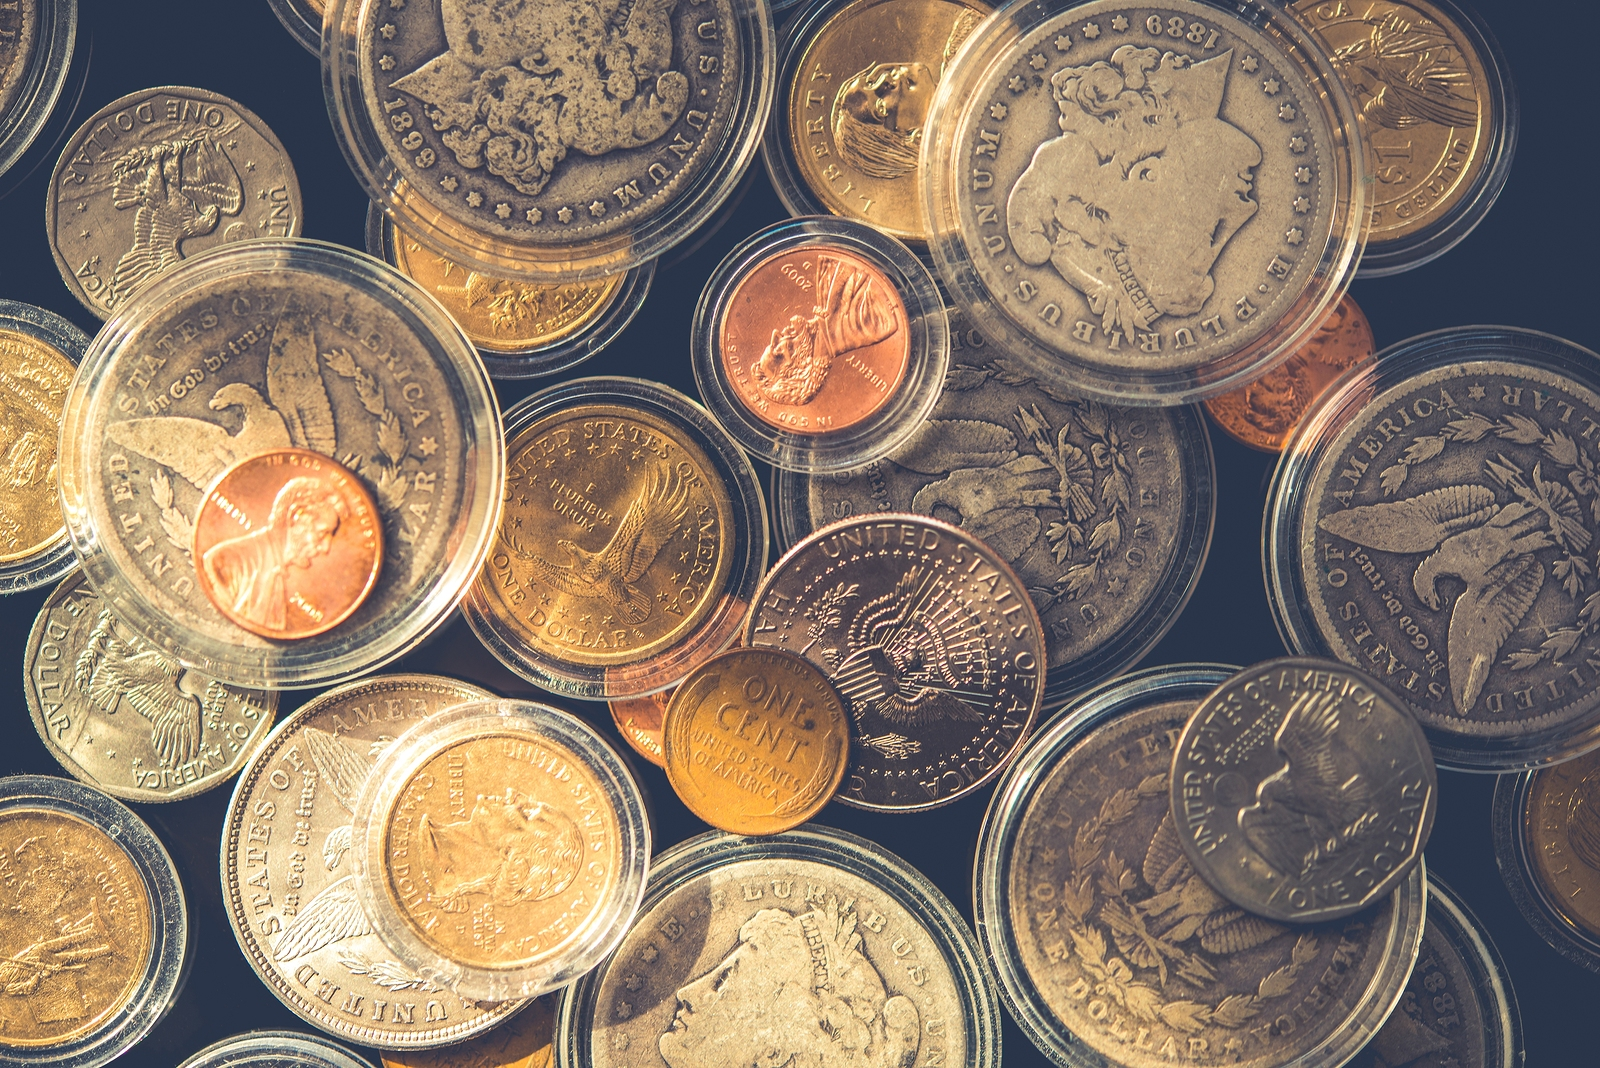 coins and other coin collectibles